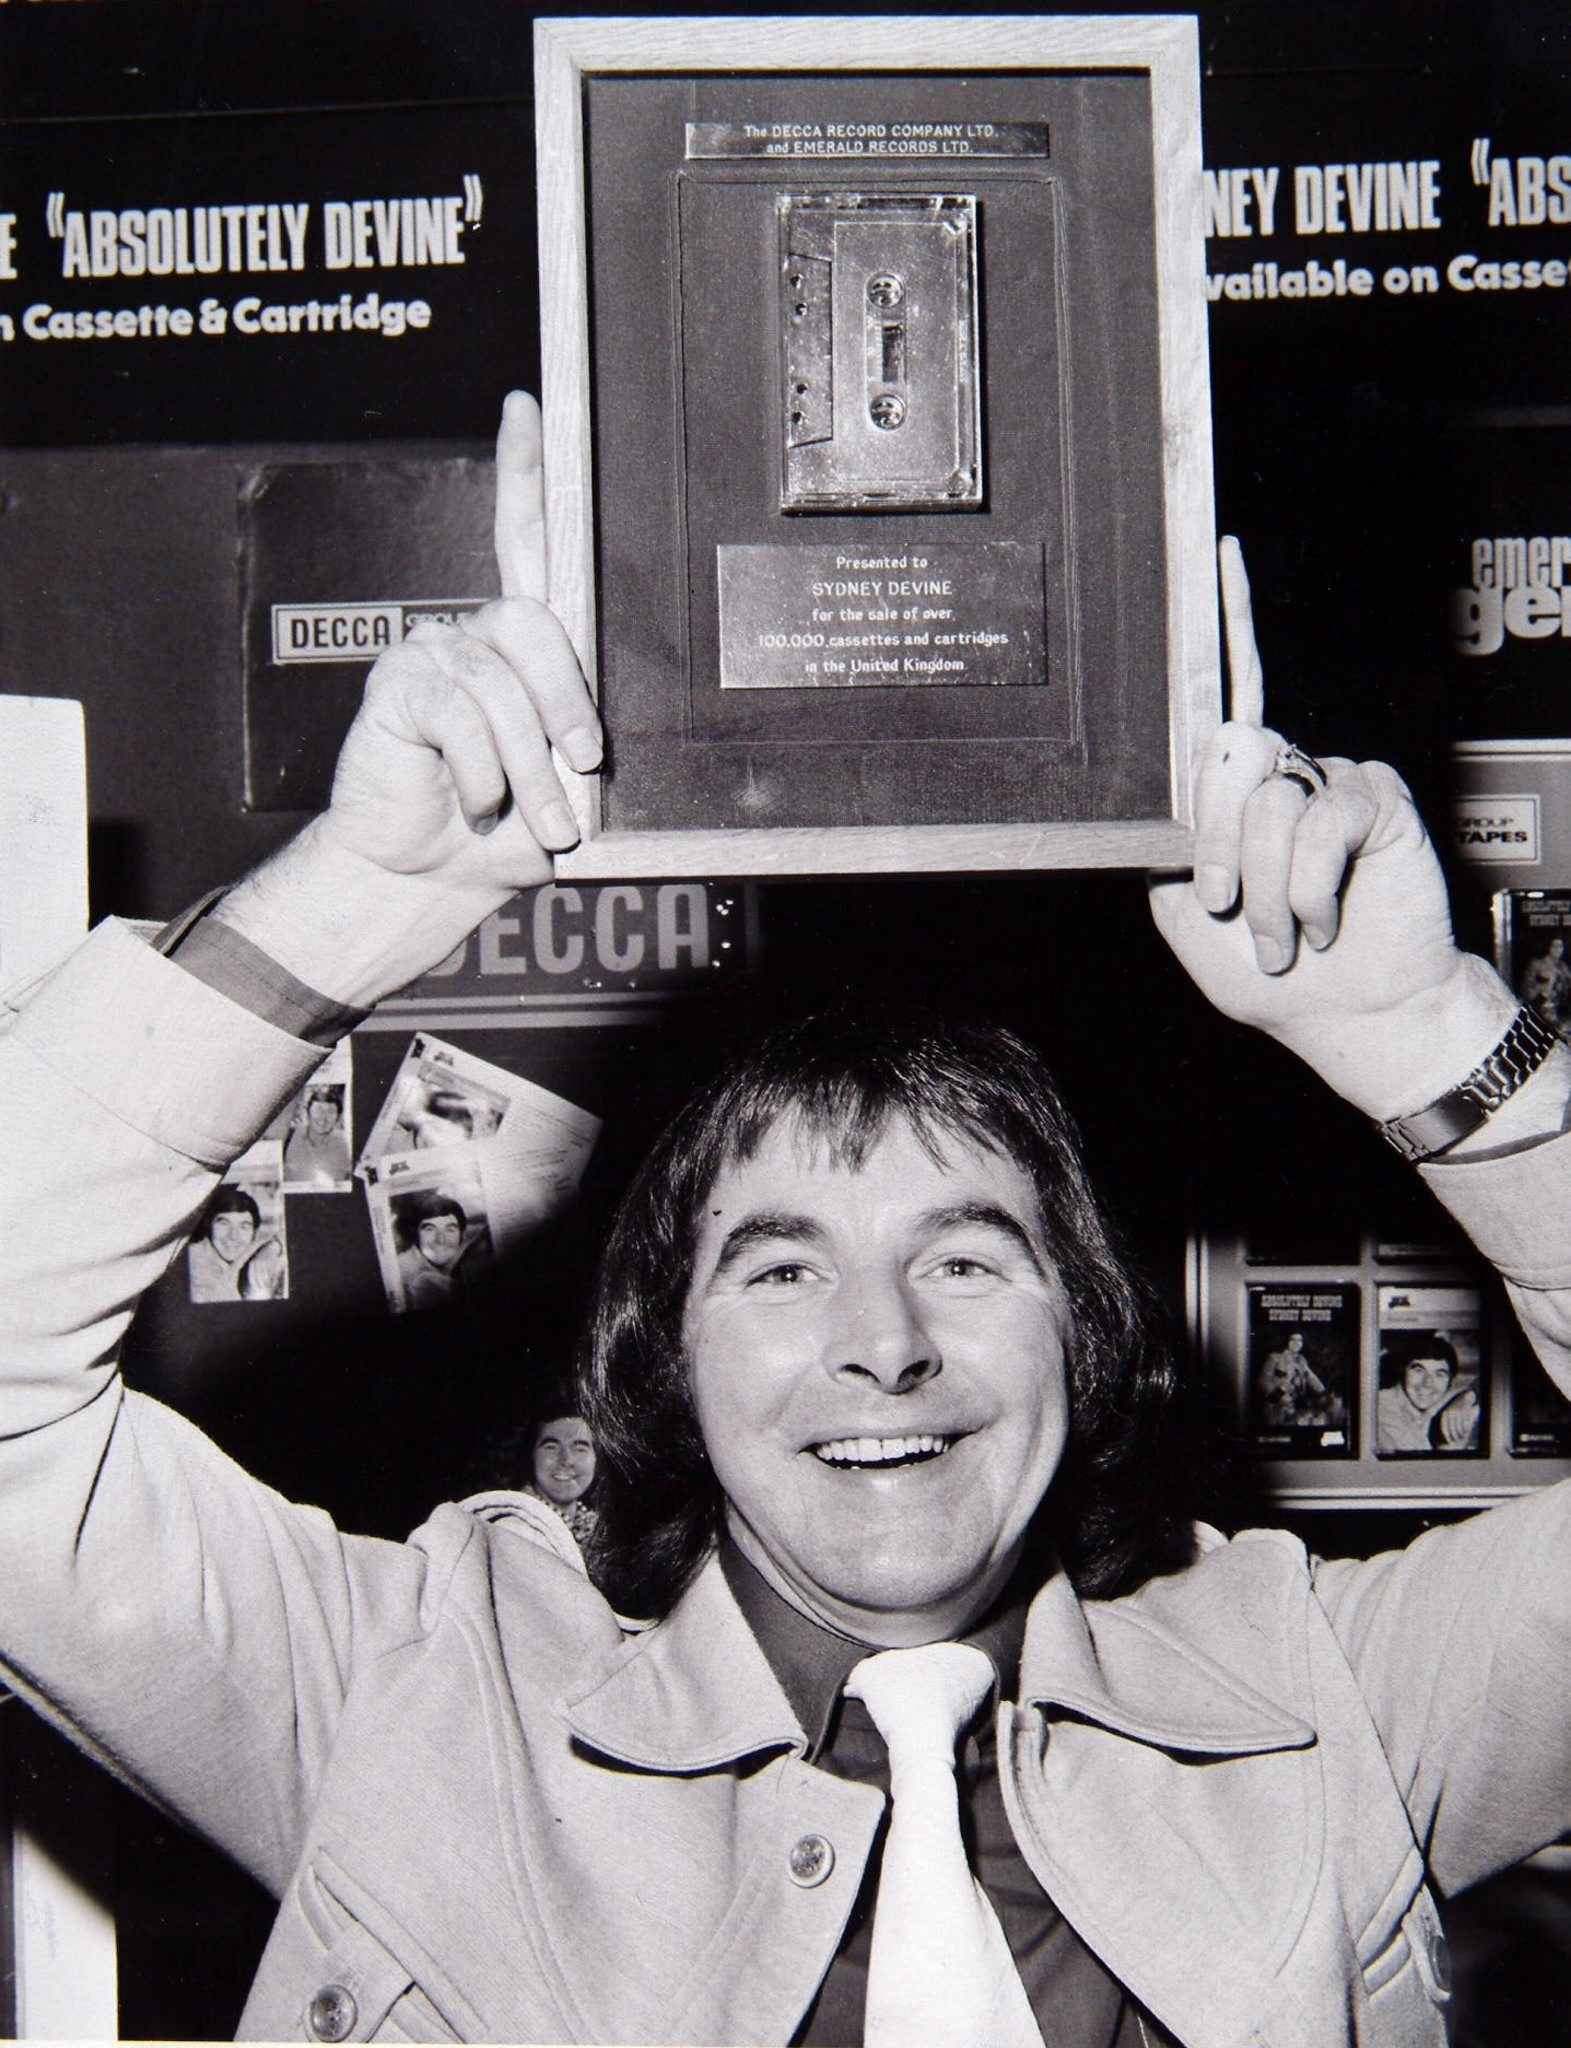 SINGER SYDNEY DEVINE WITH HIS GOLD CASSETTE. 1975. Pic: Herald and Times